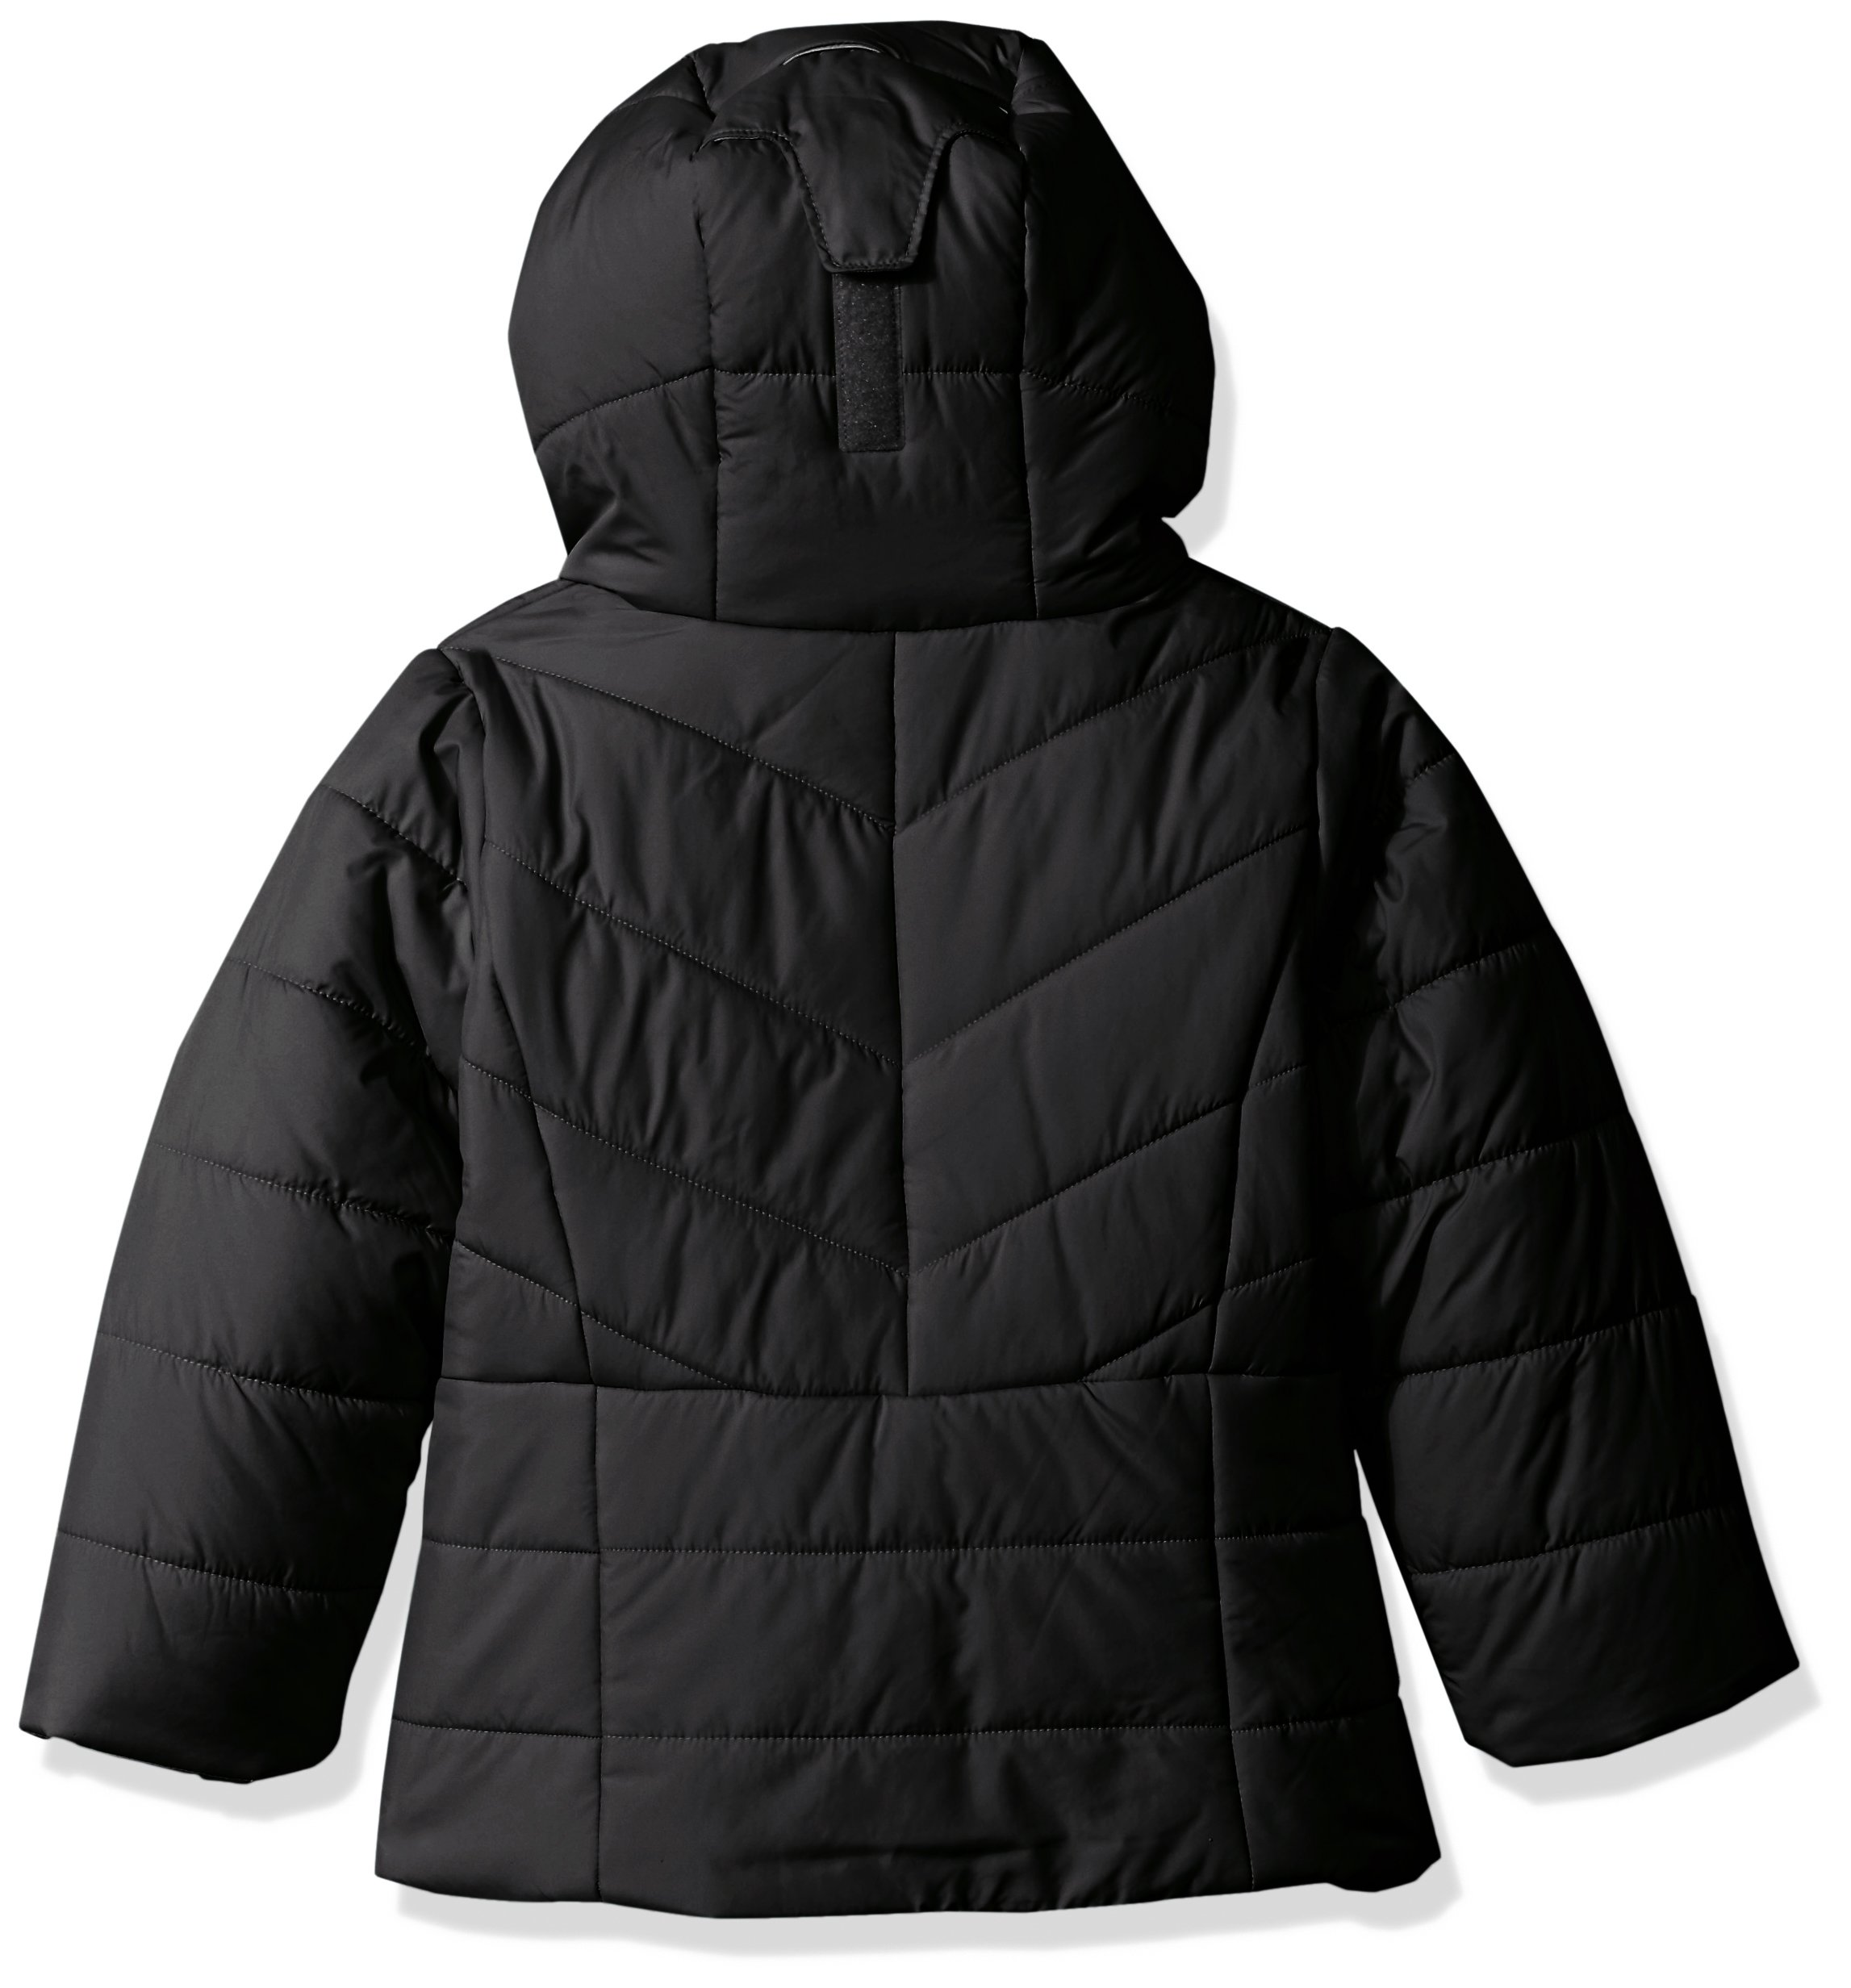 Columbia Girls' Toddler Katelyn Crest Jacket, Black, 3T by Columbia (Image #2)